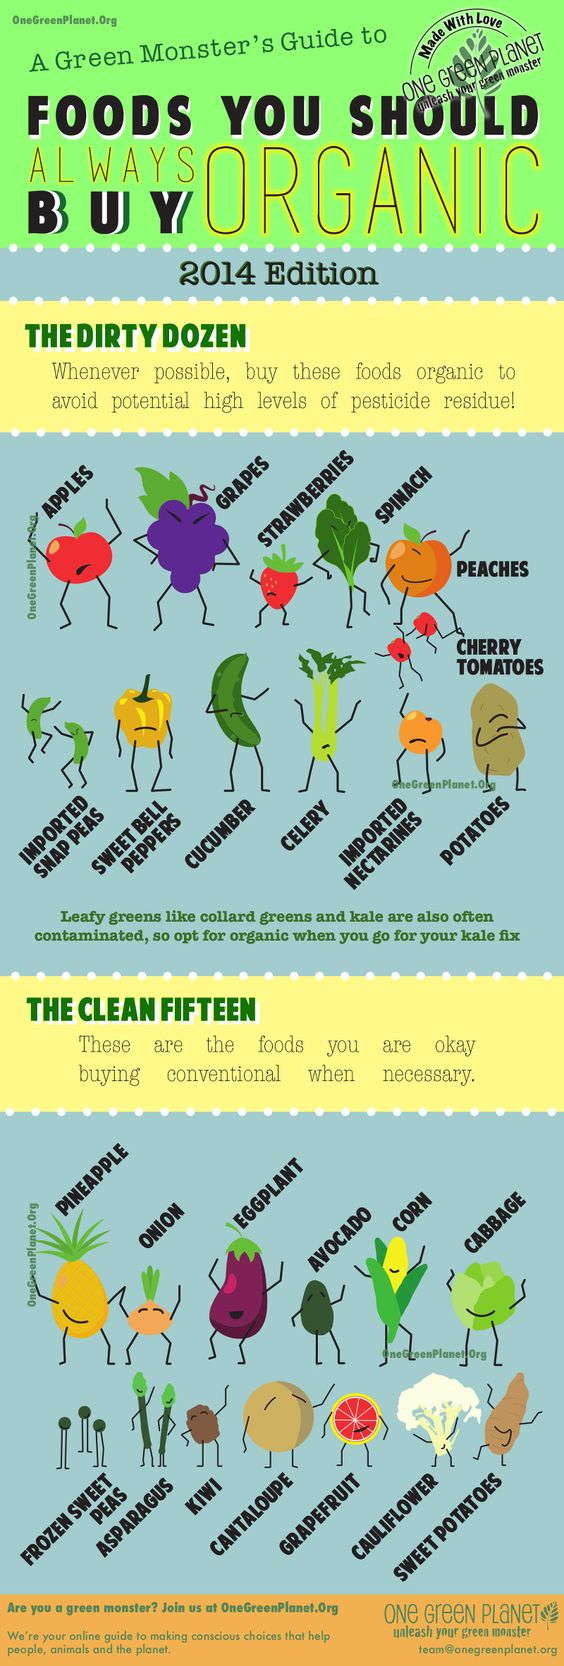 Dirty Dozen: 12 Fruits and Vegetables You Should Always Buy Organic in 2014 (INFOGRAPHIC) | One Green Planet: